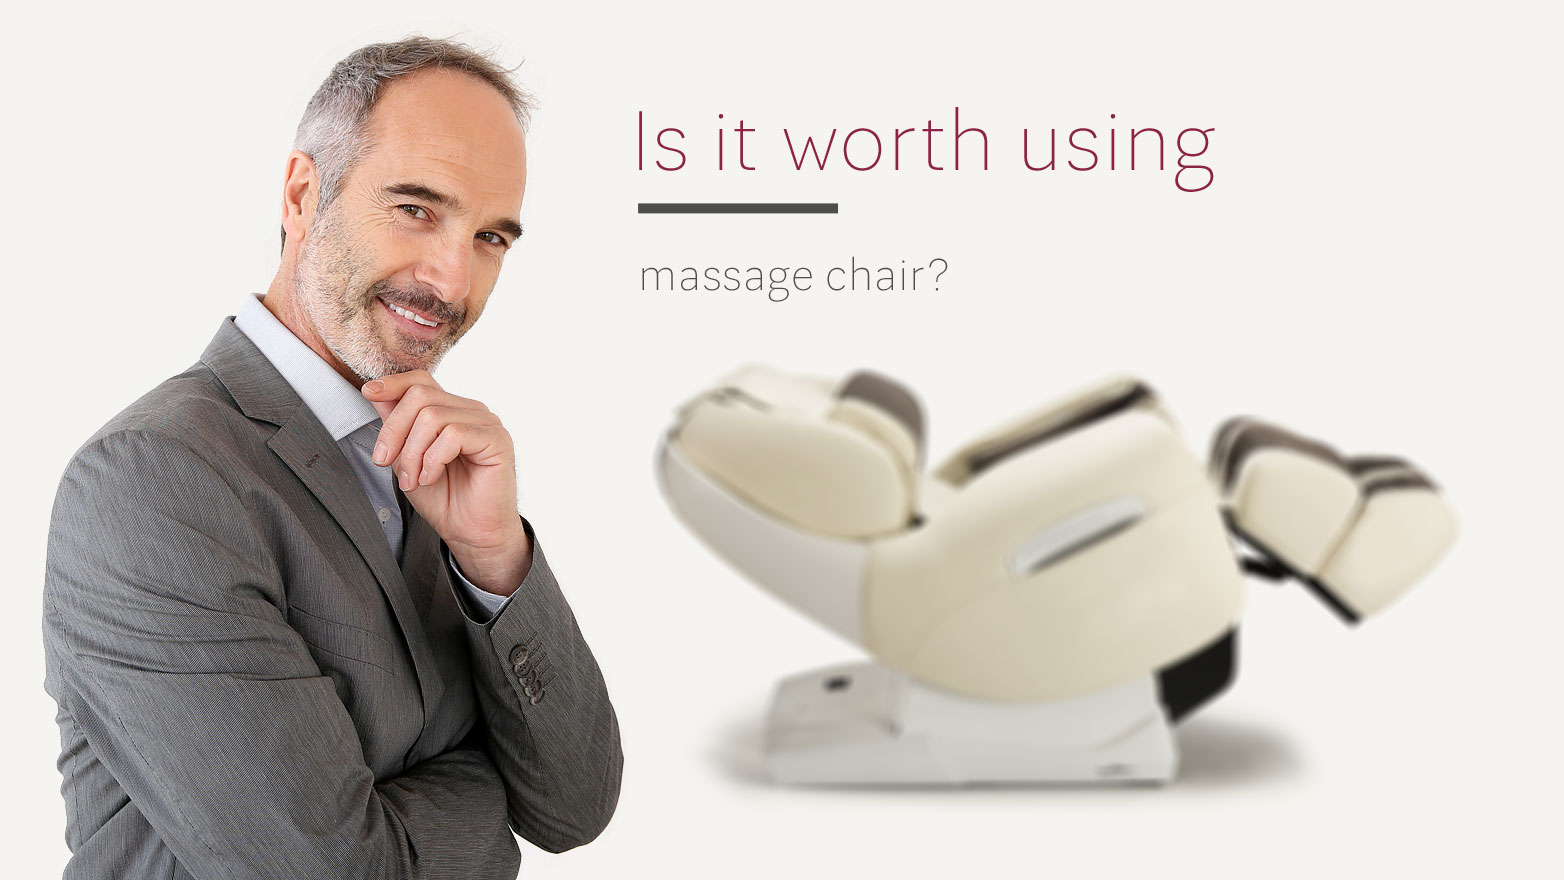 Massage chair worth using Rest Lords